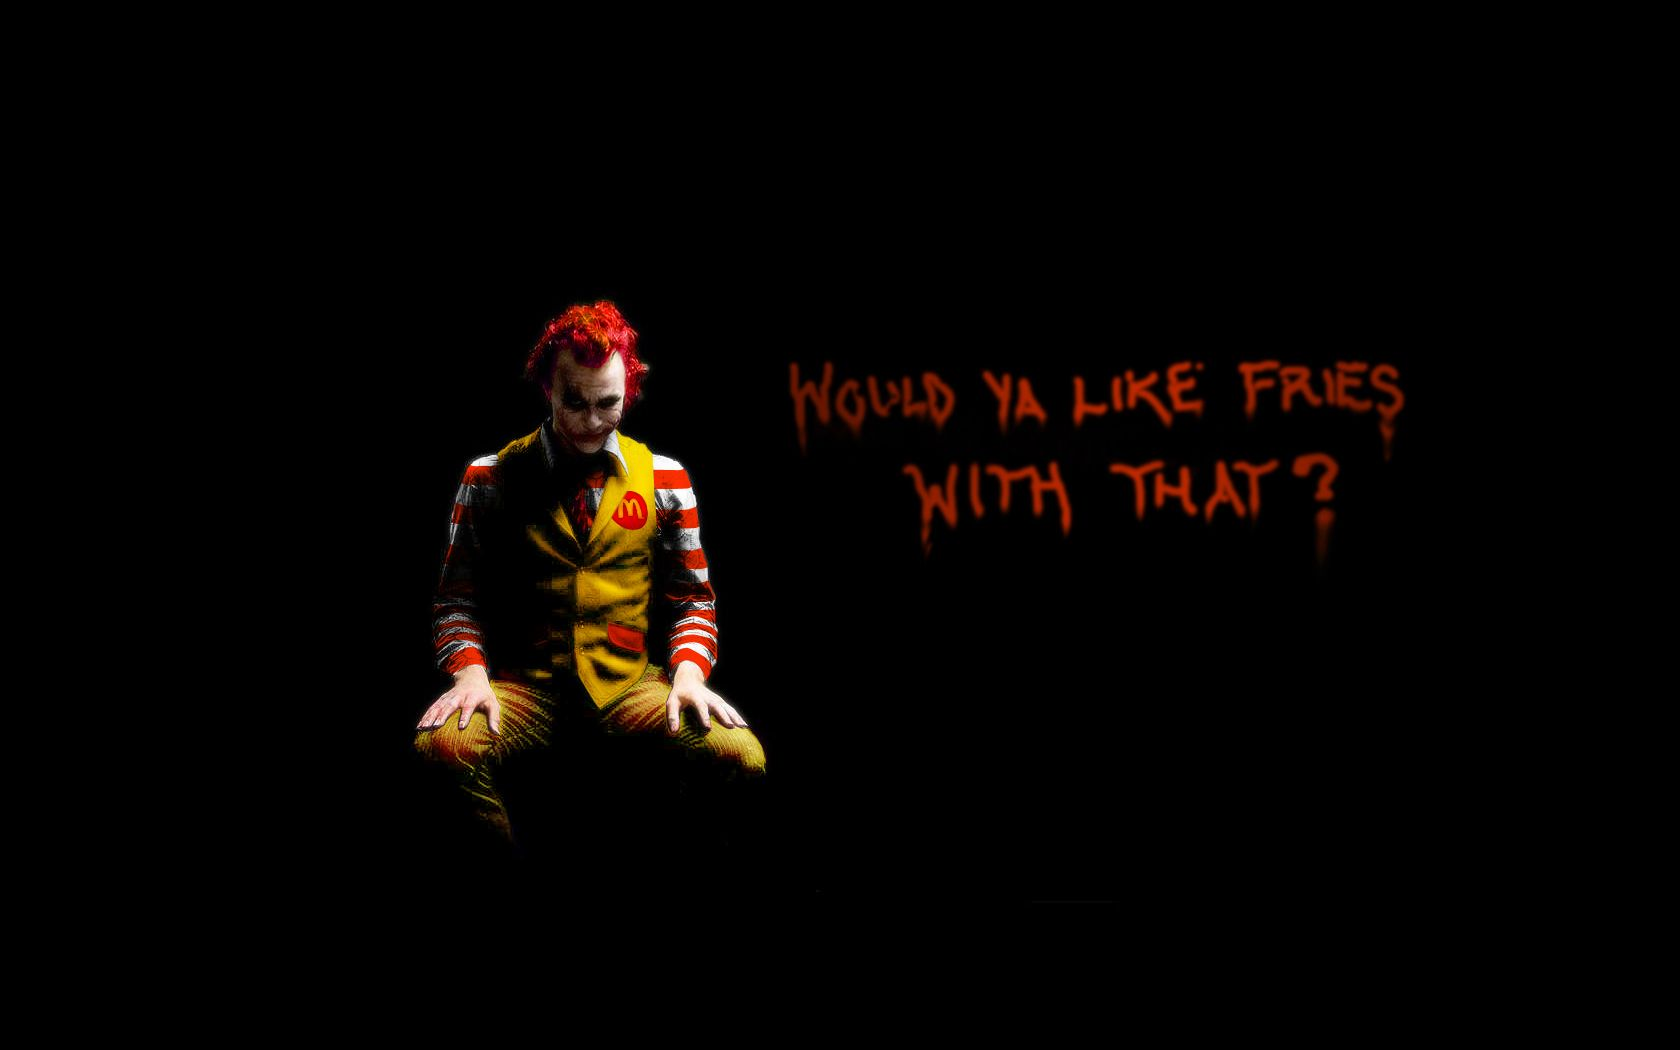 Delicieux Batman Quotes The Joker Ronald McDonald McDonalds / 1680x1050  Wallpaper